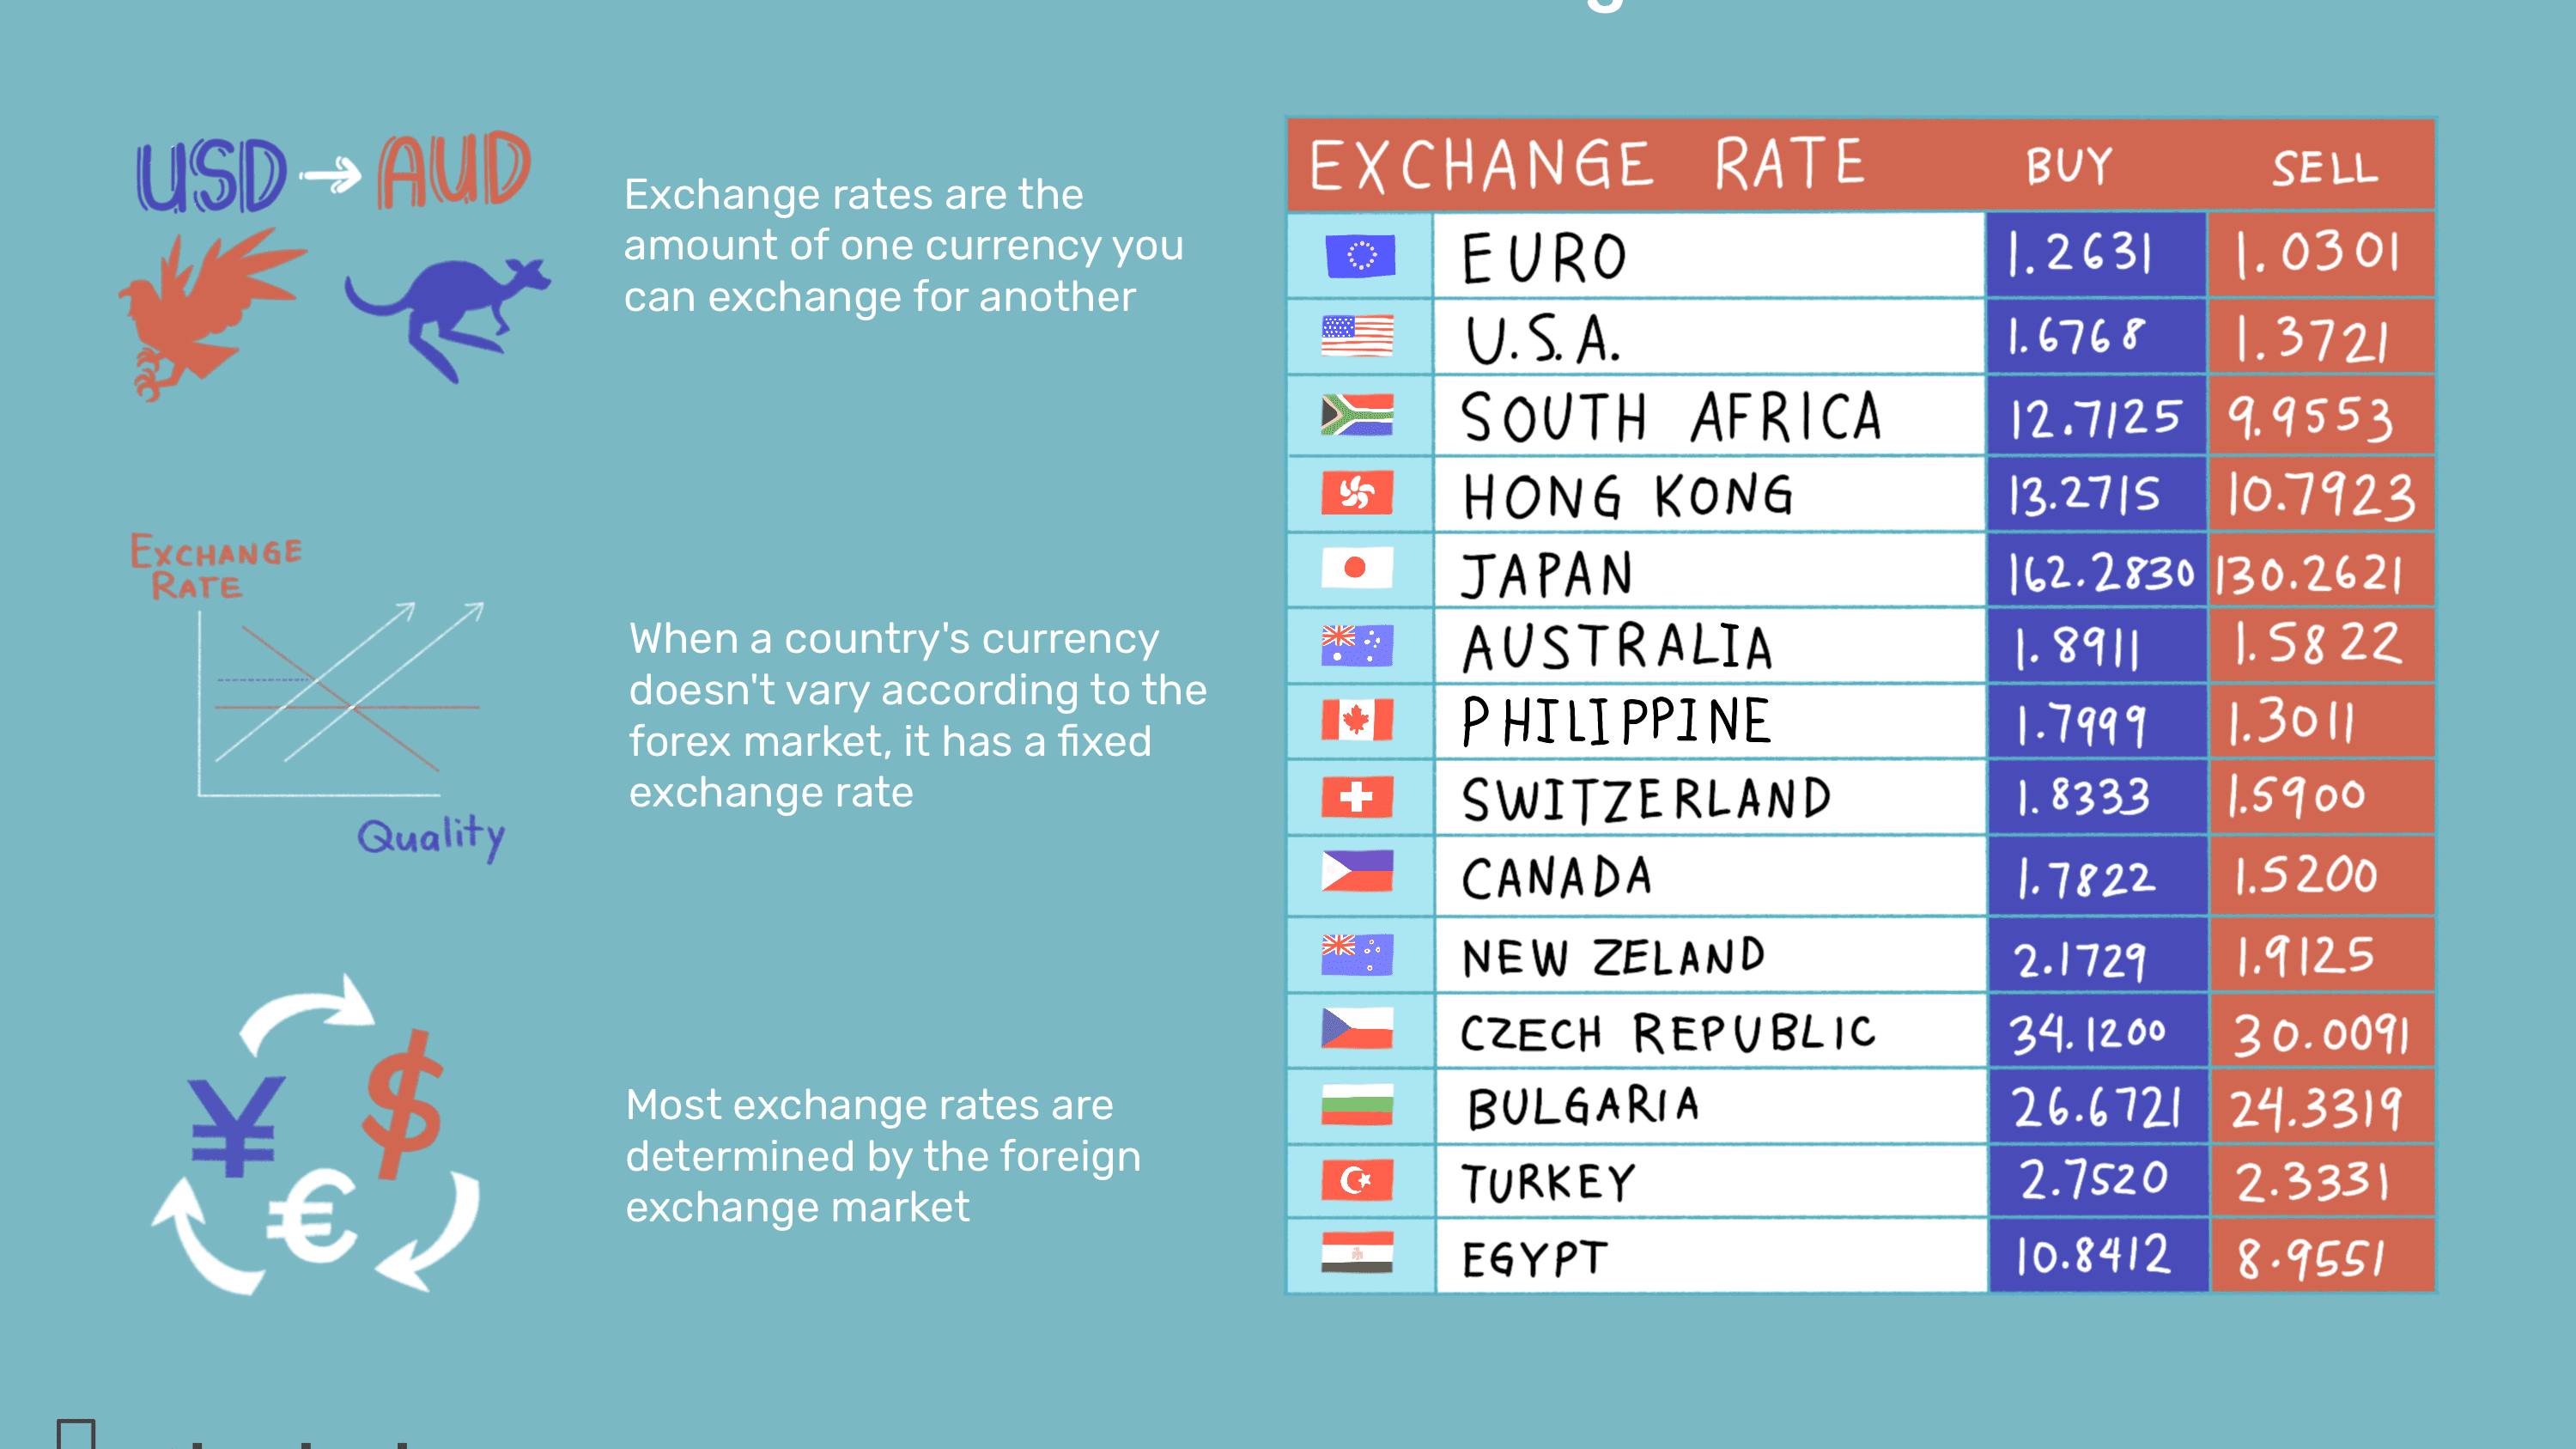 How Do Currency Exchange Rates Work?